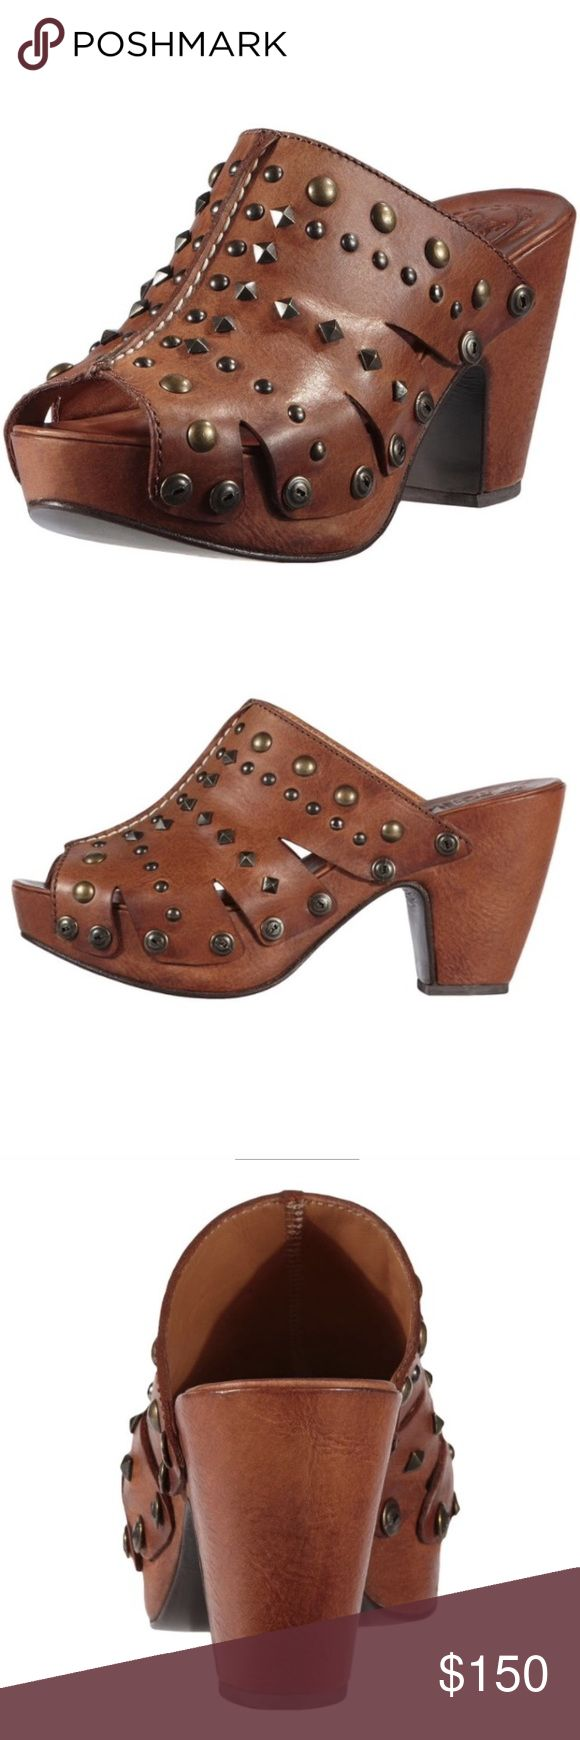 Ariat Tasmania Studded Clog NWB Bohemian-inspired styling and artisan craftsmanship created the individualistic Tasmania clog. This eclectic slip-on clog is constructed from full-grain leather that has been laser cut and adorned with dome and pyramid metal studs. The footbed is leather lined and features Ariats comfort system. The lightweight base features a 1 1/4 inch platform and 3 1/2 inch heel with a natural leather outsole. Finishing details include a leather-wrapped wedge, hand-stained…